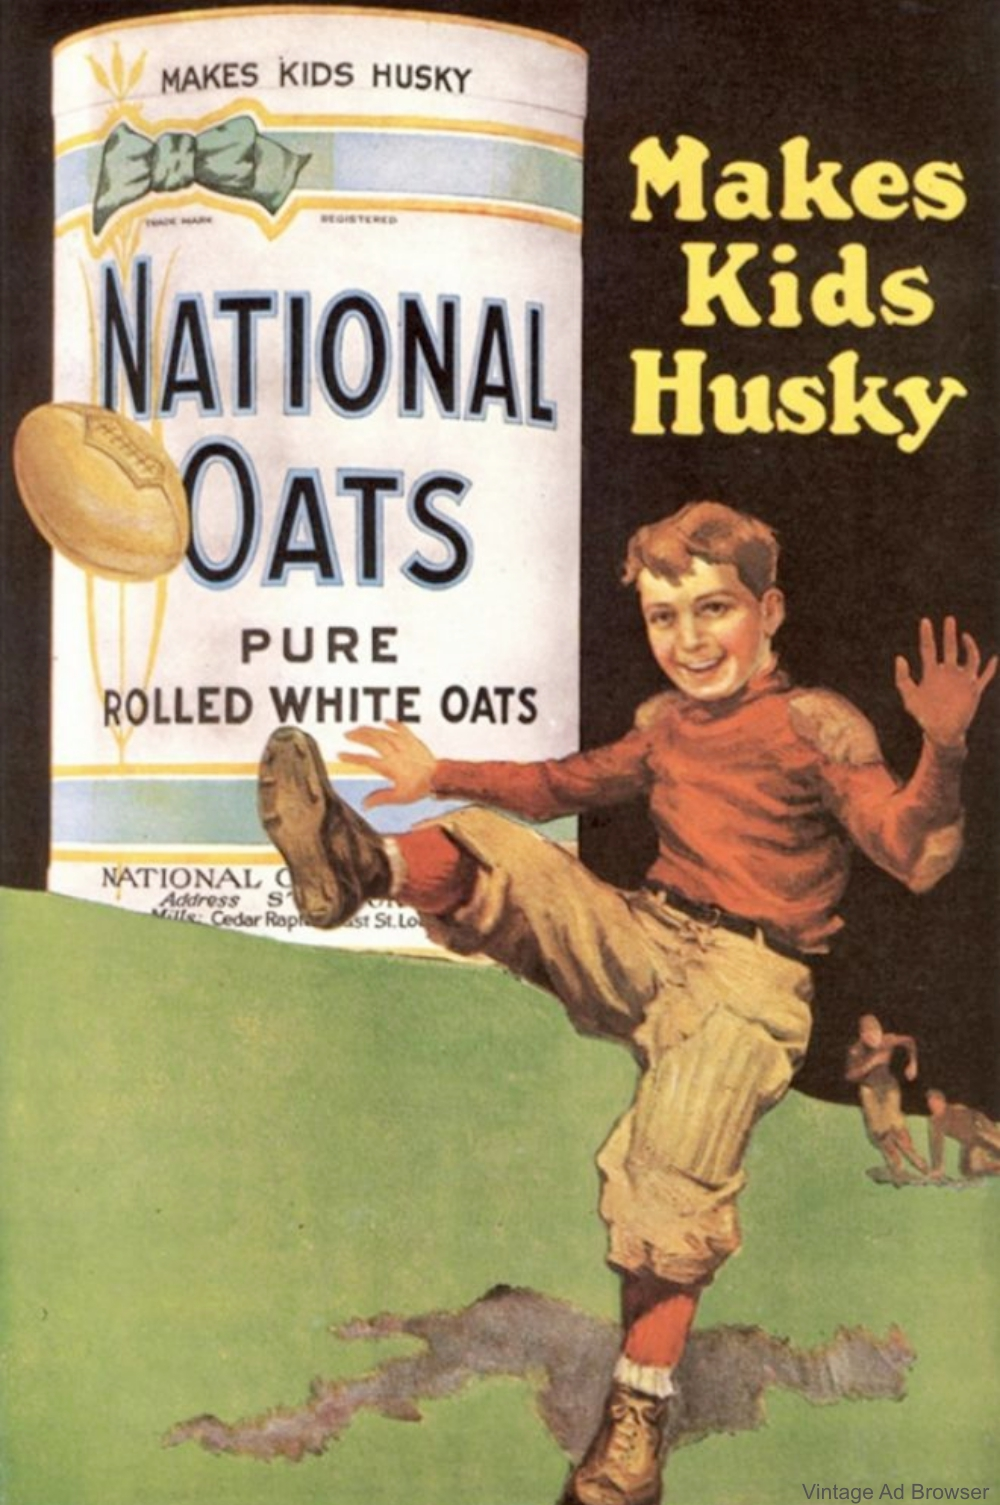 National Oats Makes Kids Husky Vintage Advertisement